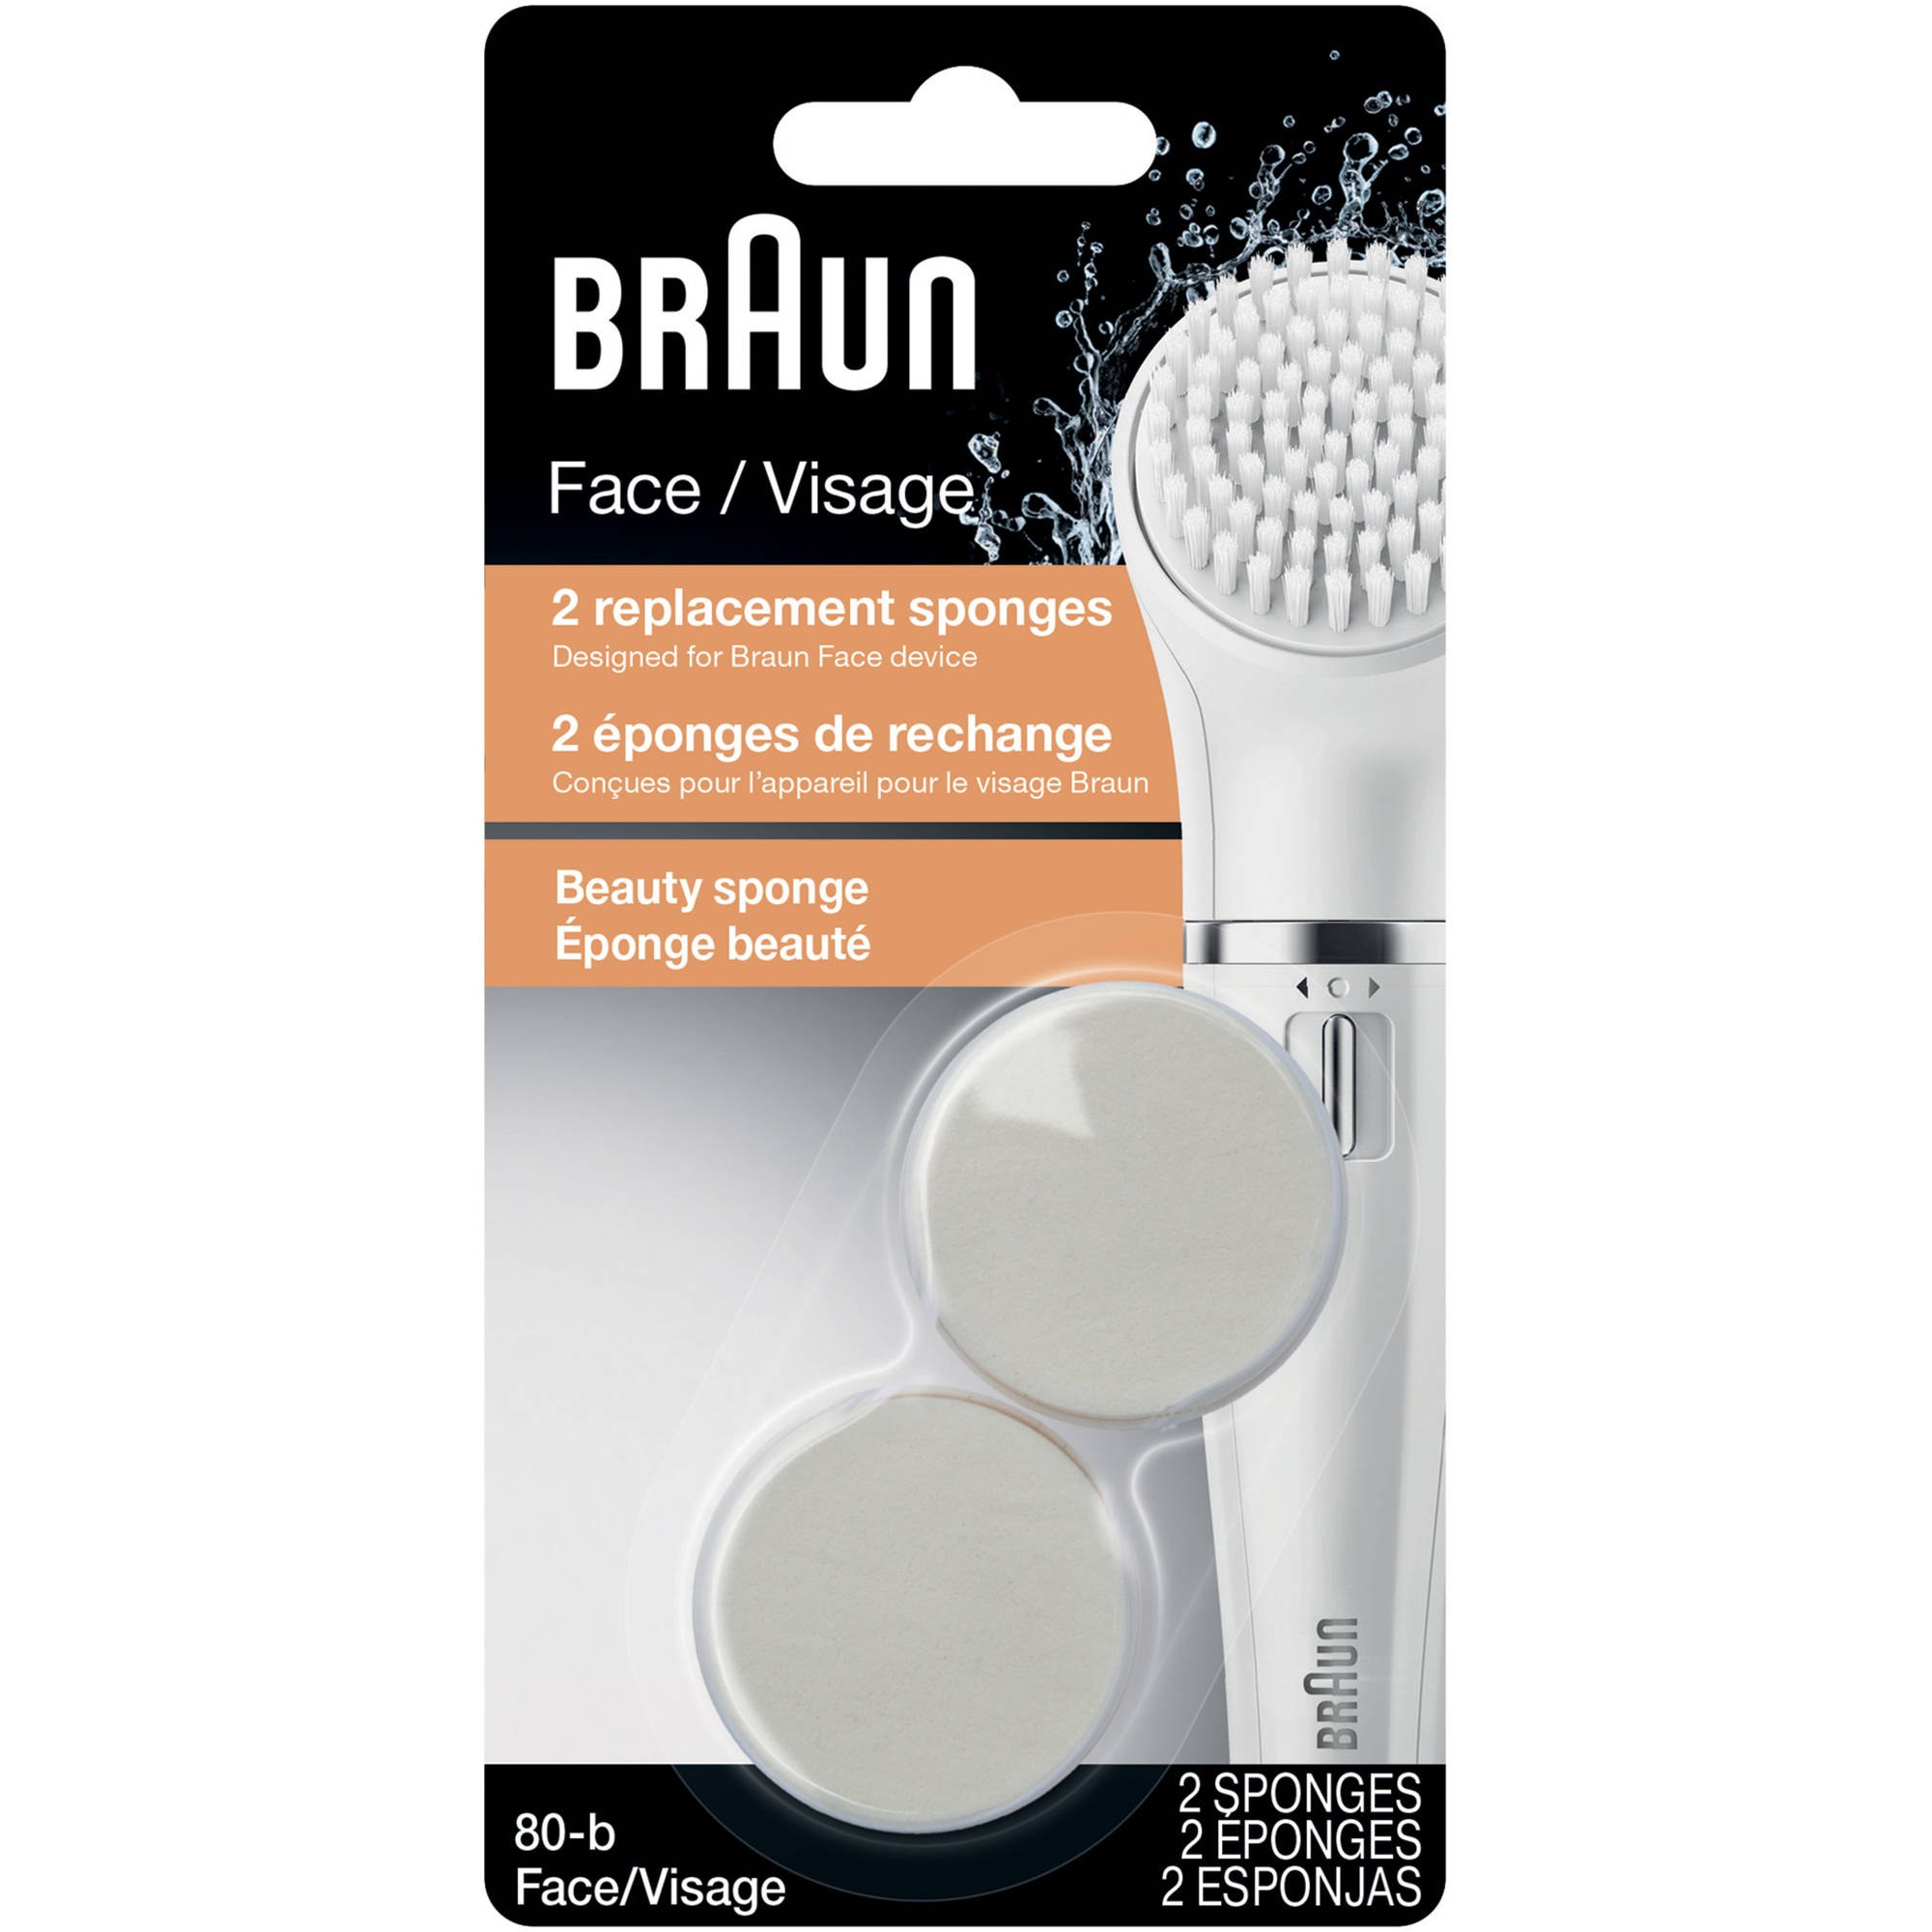 Braun Face 80-b Beauty Sponge Replacement Brushes, 2 count